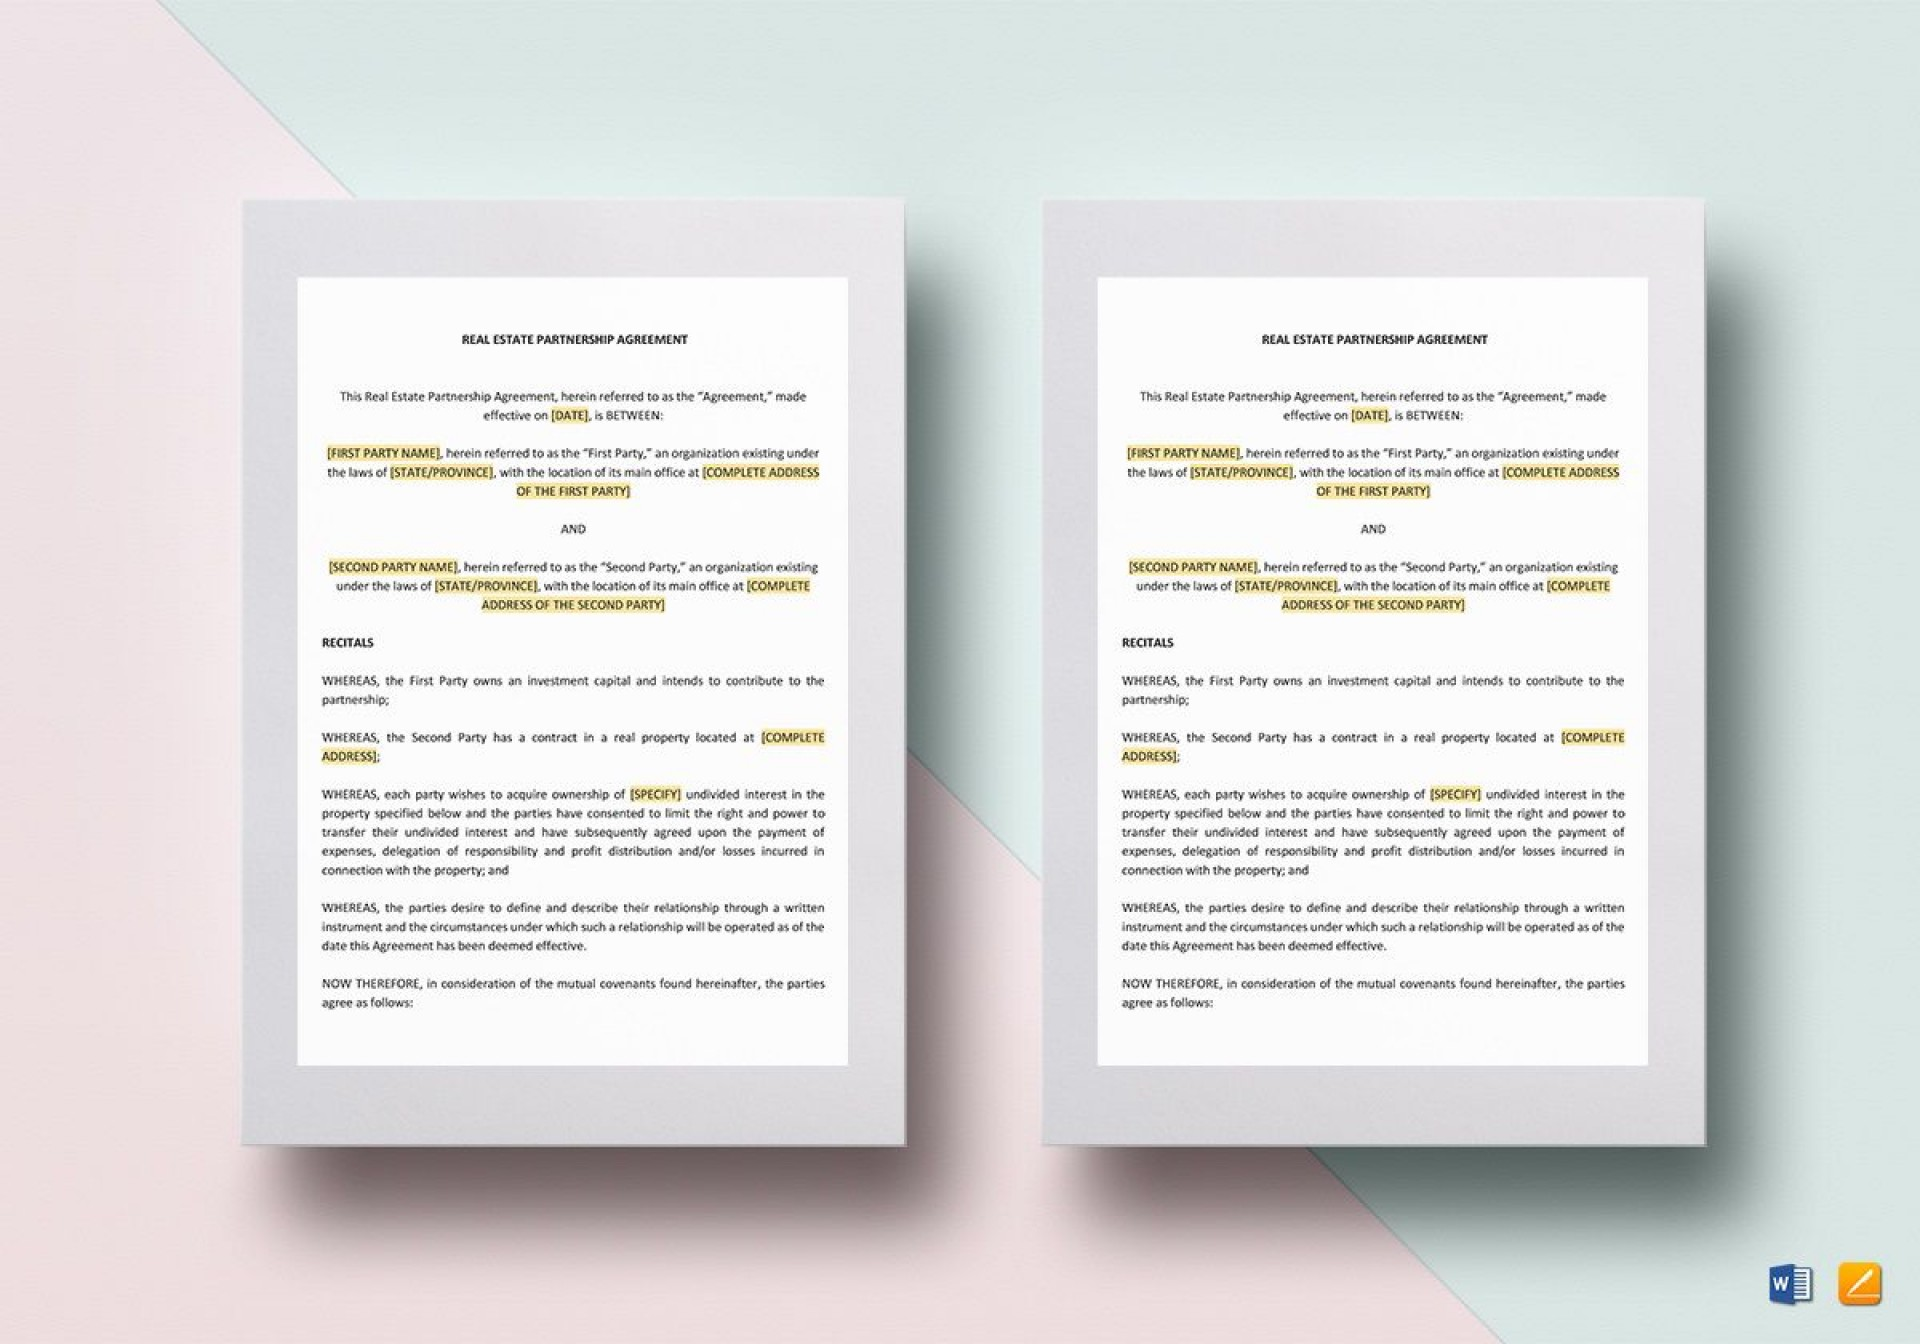 004 Surprising Real Estate Partnership Agreement Template High Def  Team Investment1920